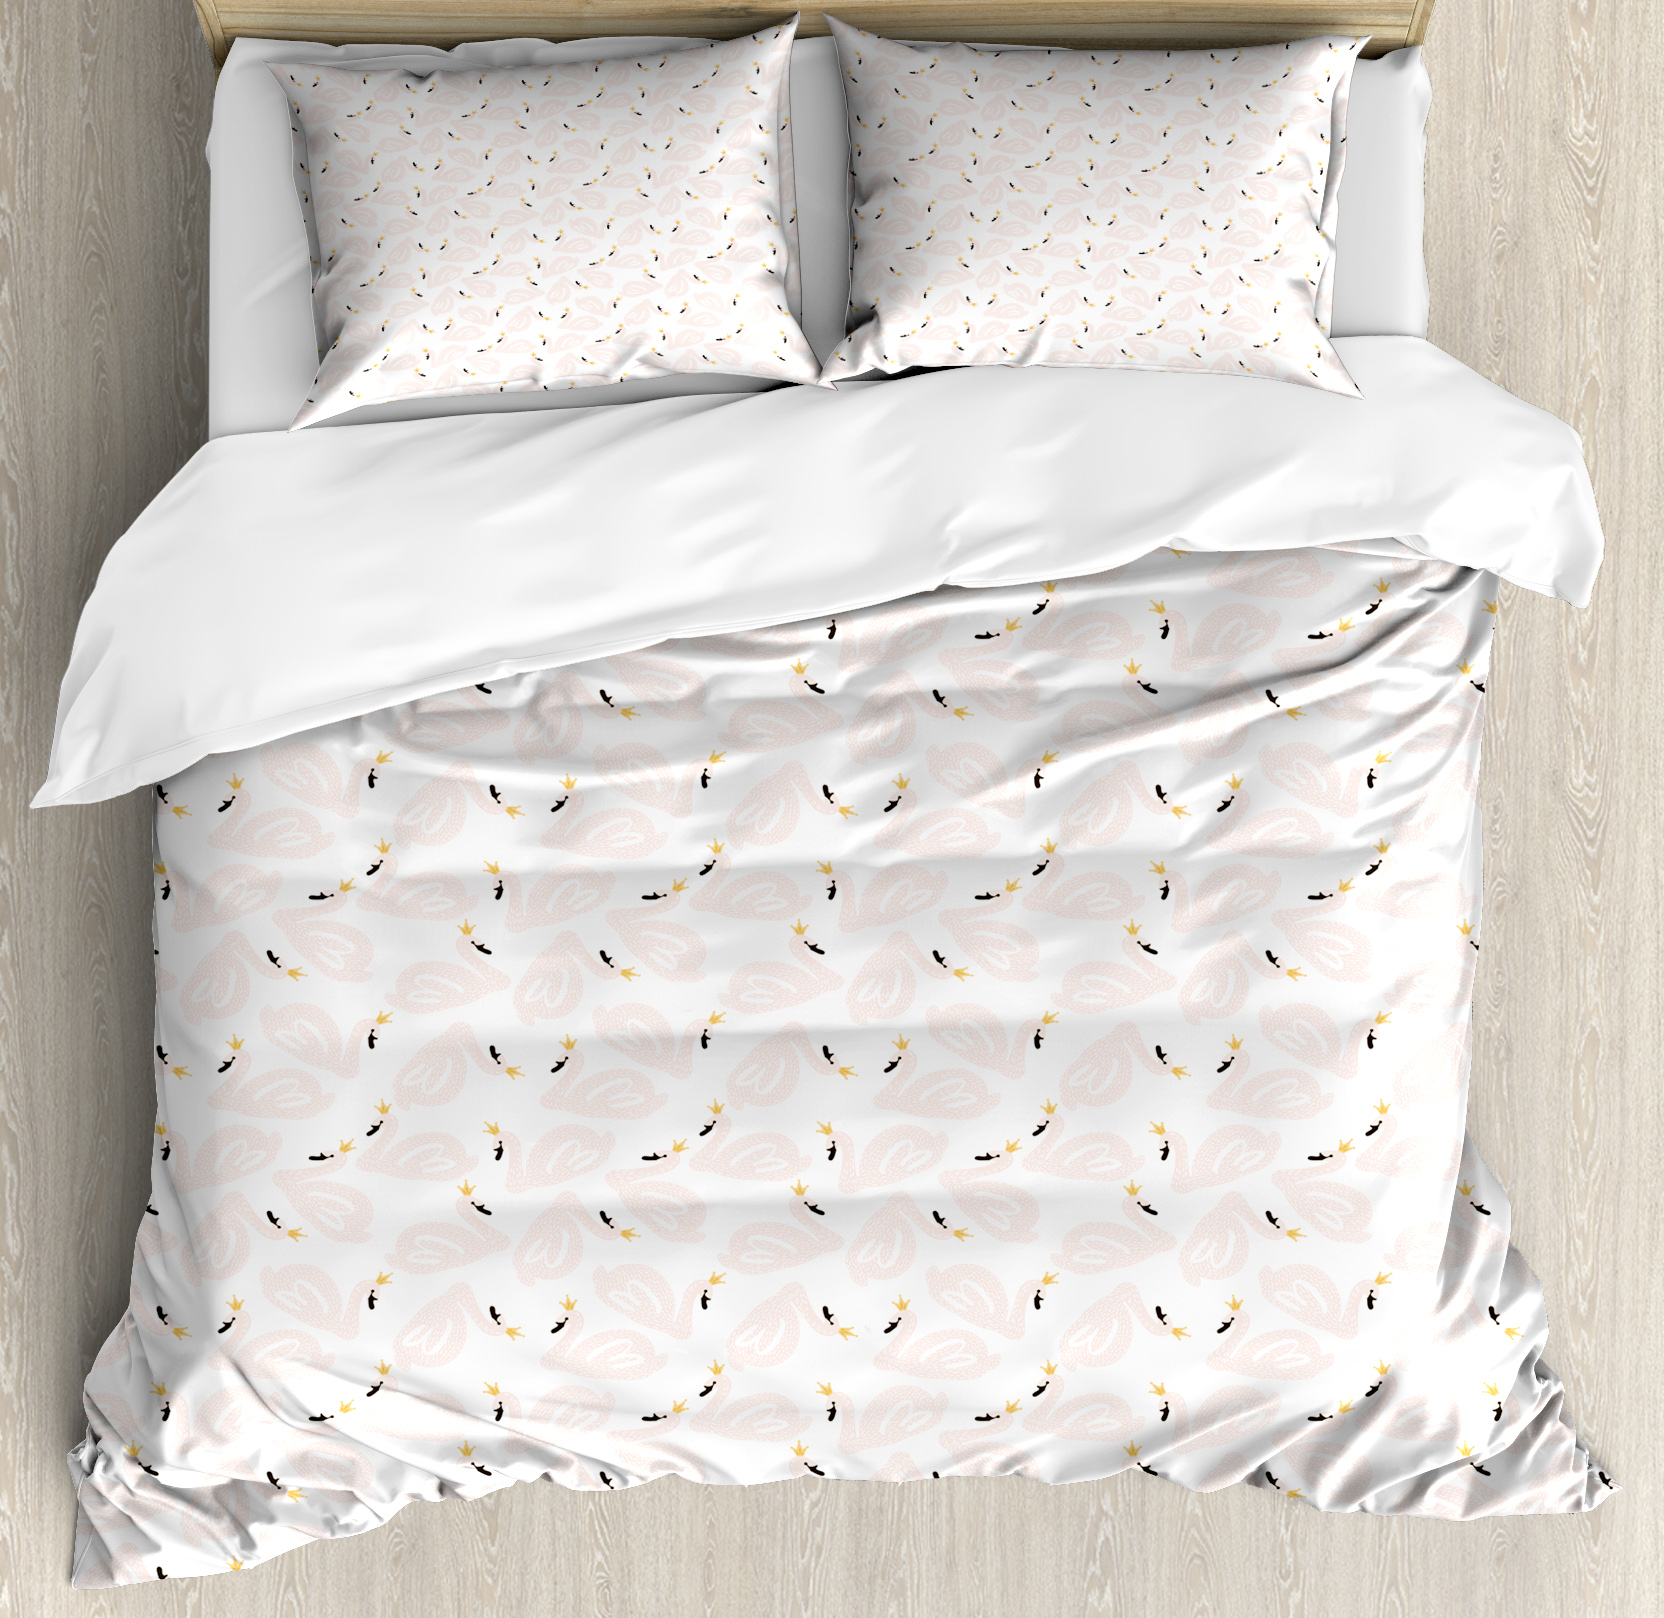 Swan Duvet Cover Set, Childish Doodle Style Pastel Color Swan Princesses Girly Style Kids Nursery, Decorative Bedding Set with Pillow Shams, Peach Marigold Black, by Ambesonne